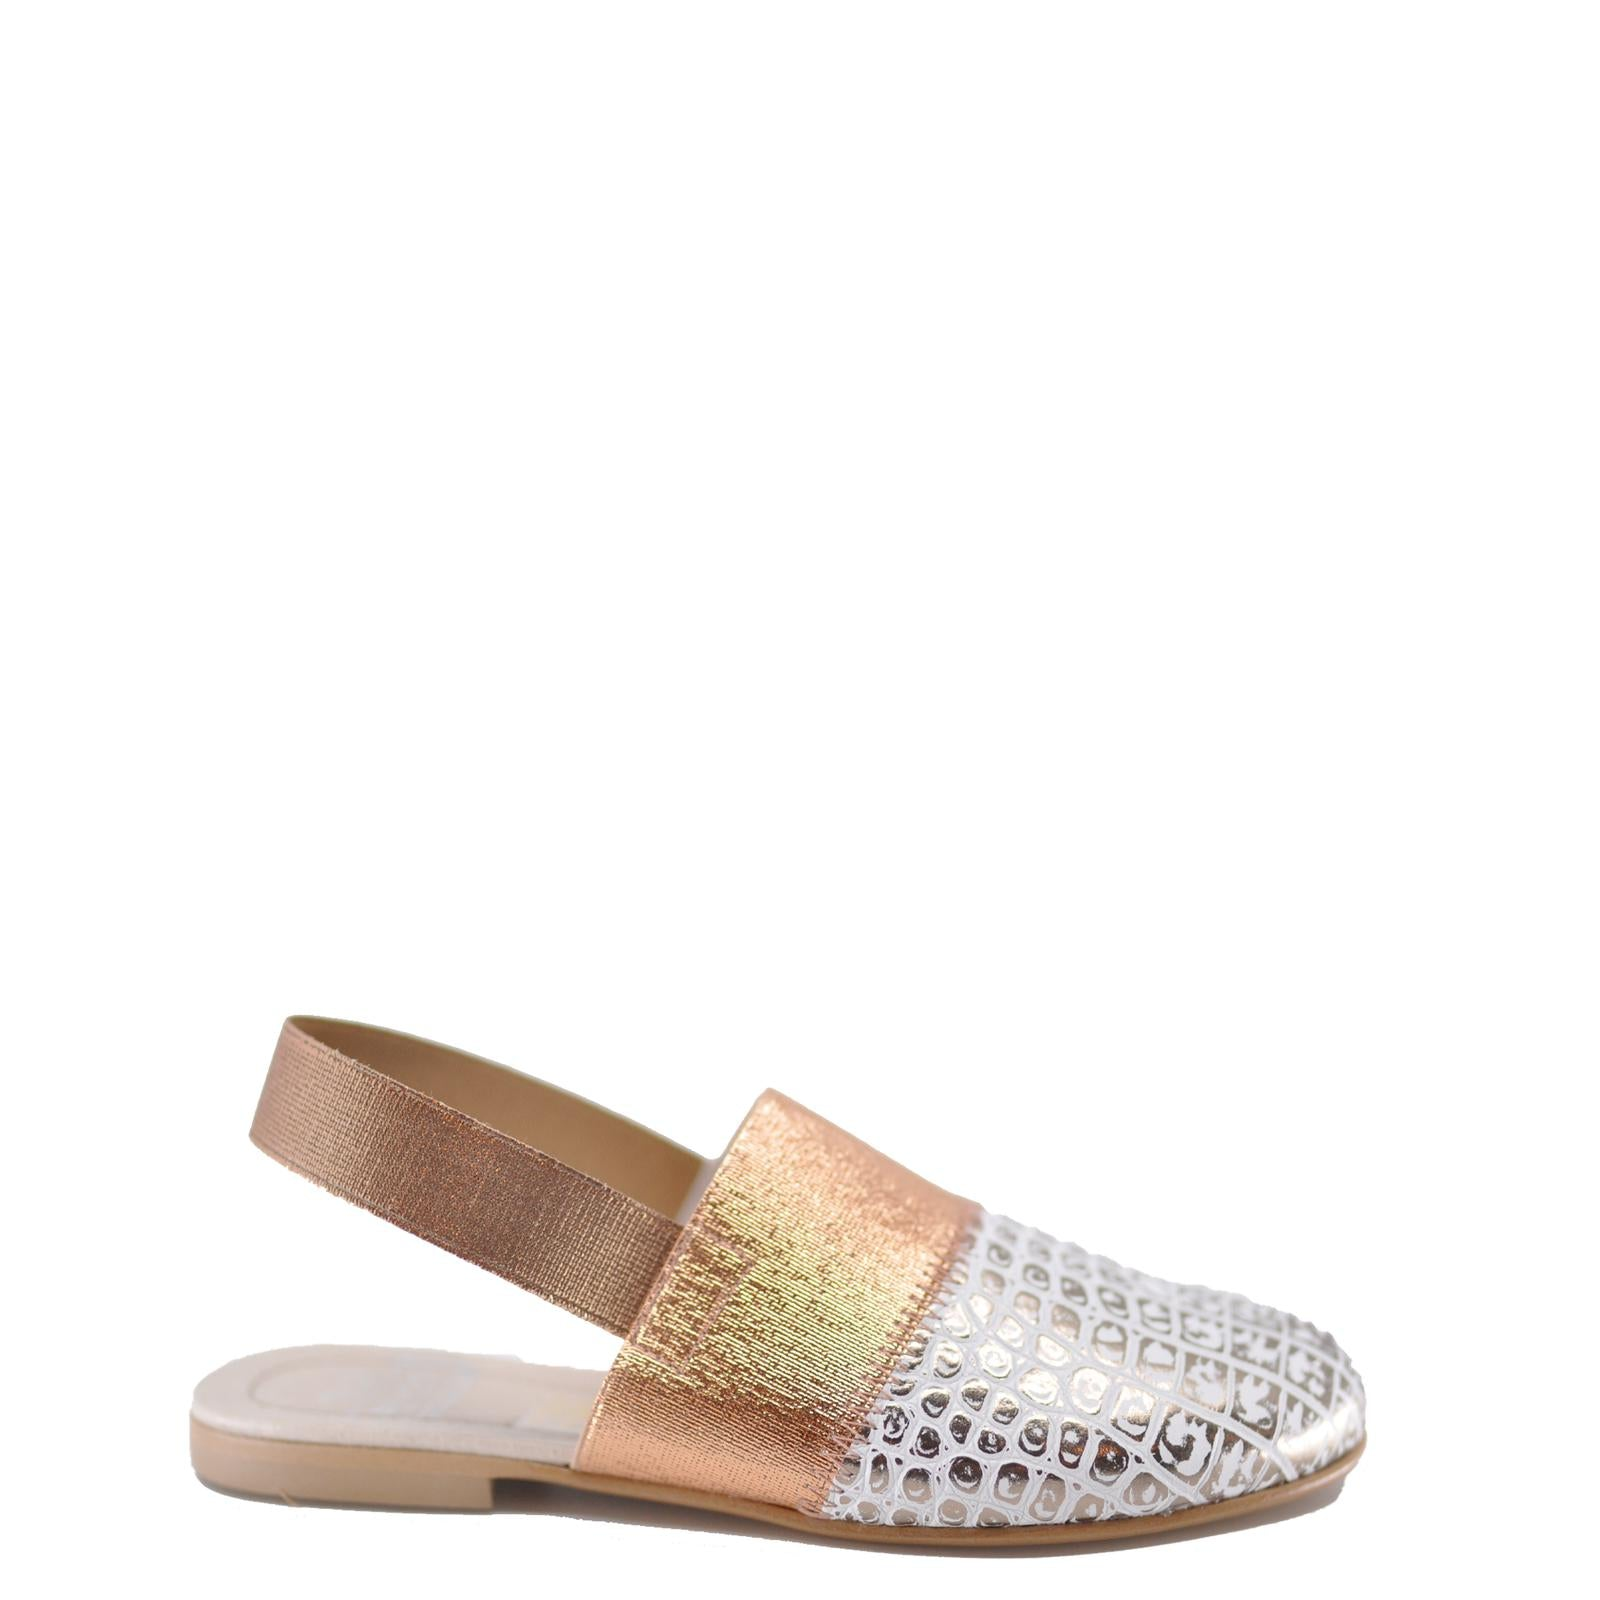 Hoo Rose Gold Croc Slingback-Tassel Children Shoes